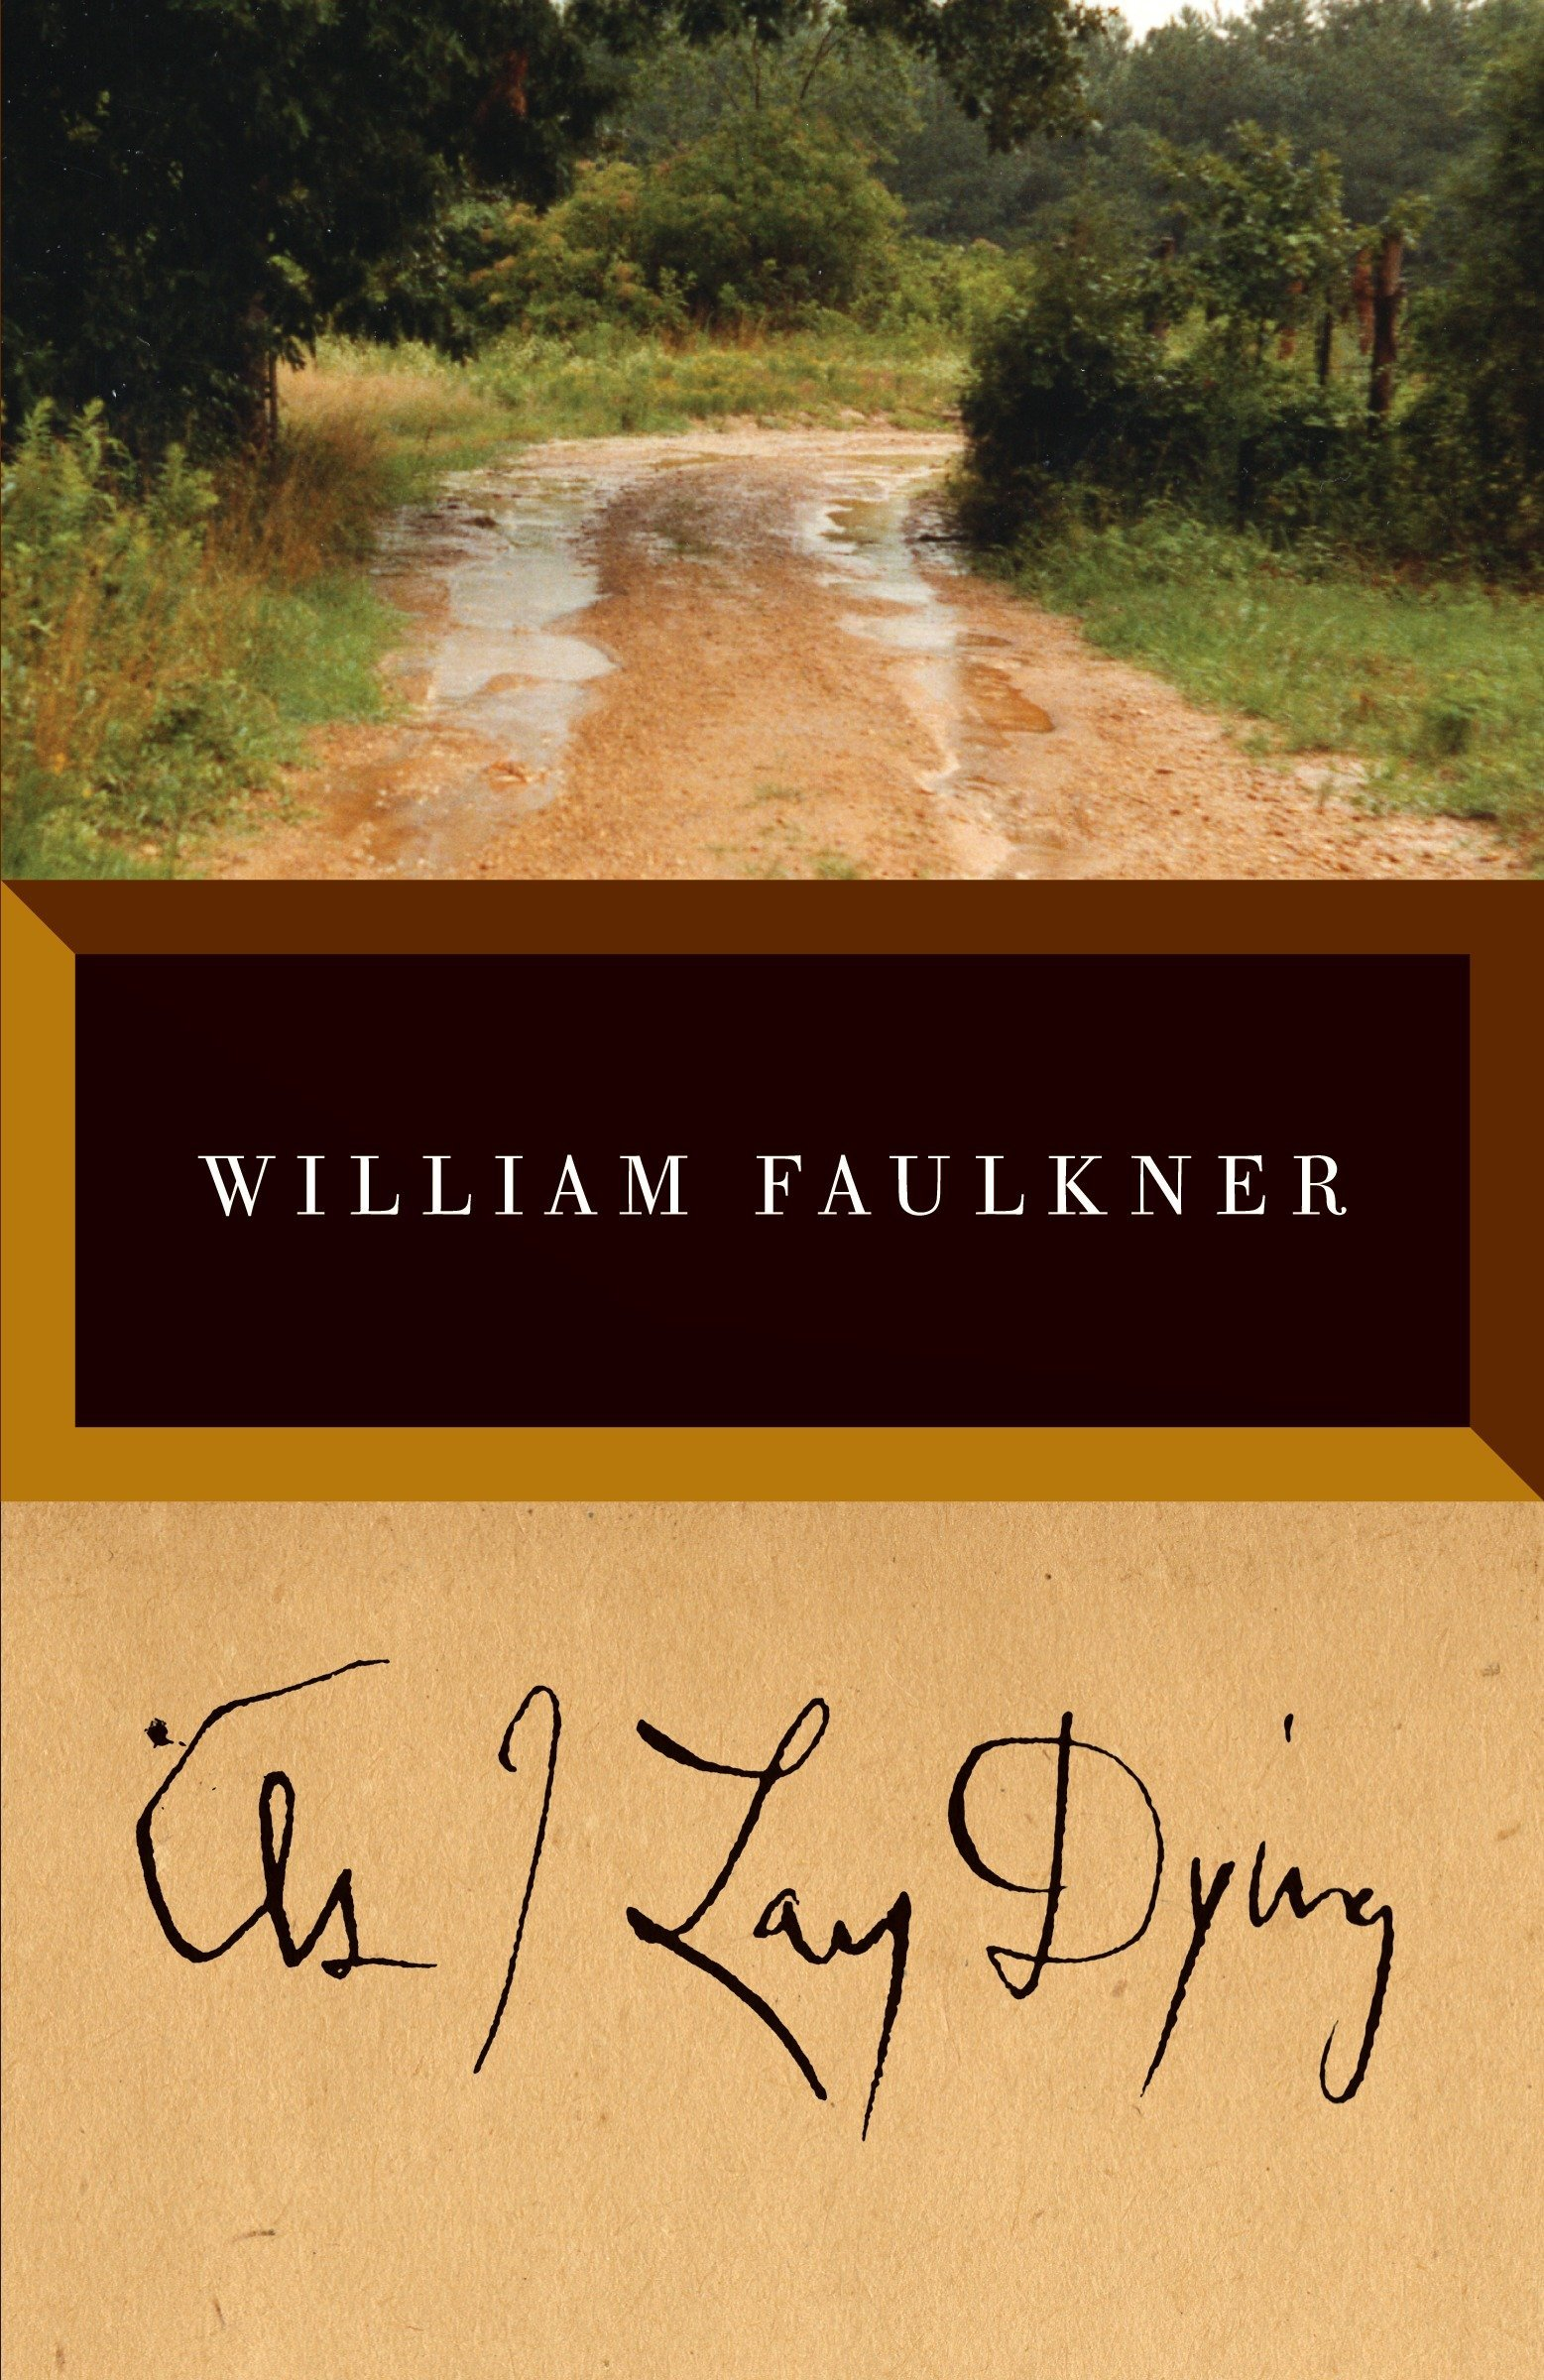 """7) As I Lay Dying - The quintessential American Southern Gothic story, Faulkner's fifth novel is a unique dark comedy that blends family, the loss of innocence, and the absurd. As I Lay Dying uses stream of consciousness, first person narration, and distinct writing styles for each of the characters to create a work that's intimate and deep. A constant on any """"Best 100 Novels"""" or """"Best American Novels"""" style lists, As I Lay Dying is Faulkner's masterpiece (which is saying a lot)."""